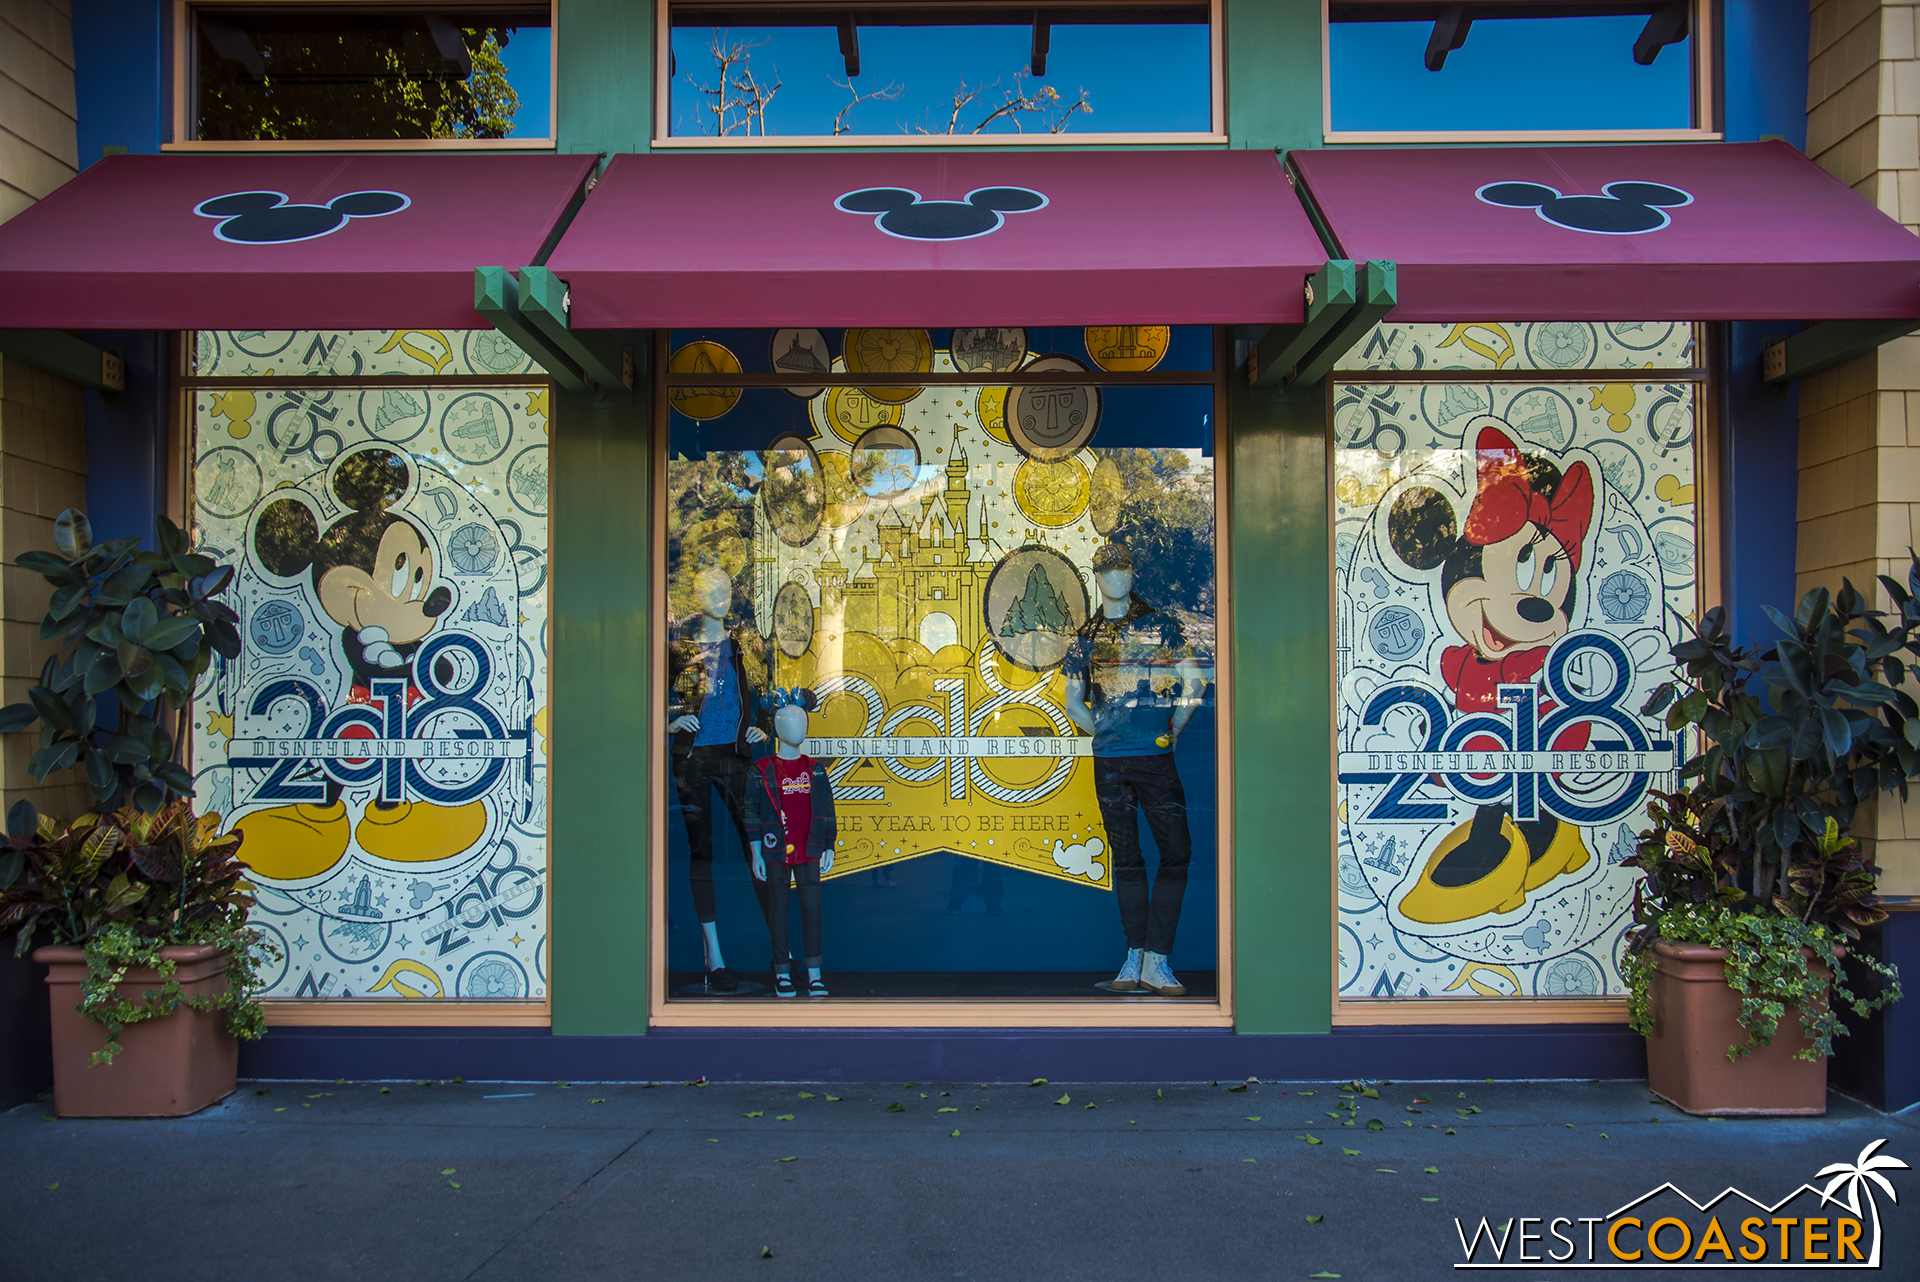 In addition, though it hasn't started yet, the World of Disney Store will be getting a multi-stage modernization to freshen up the store.